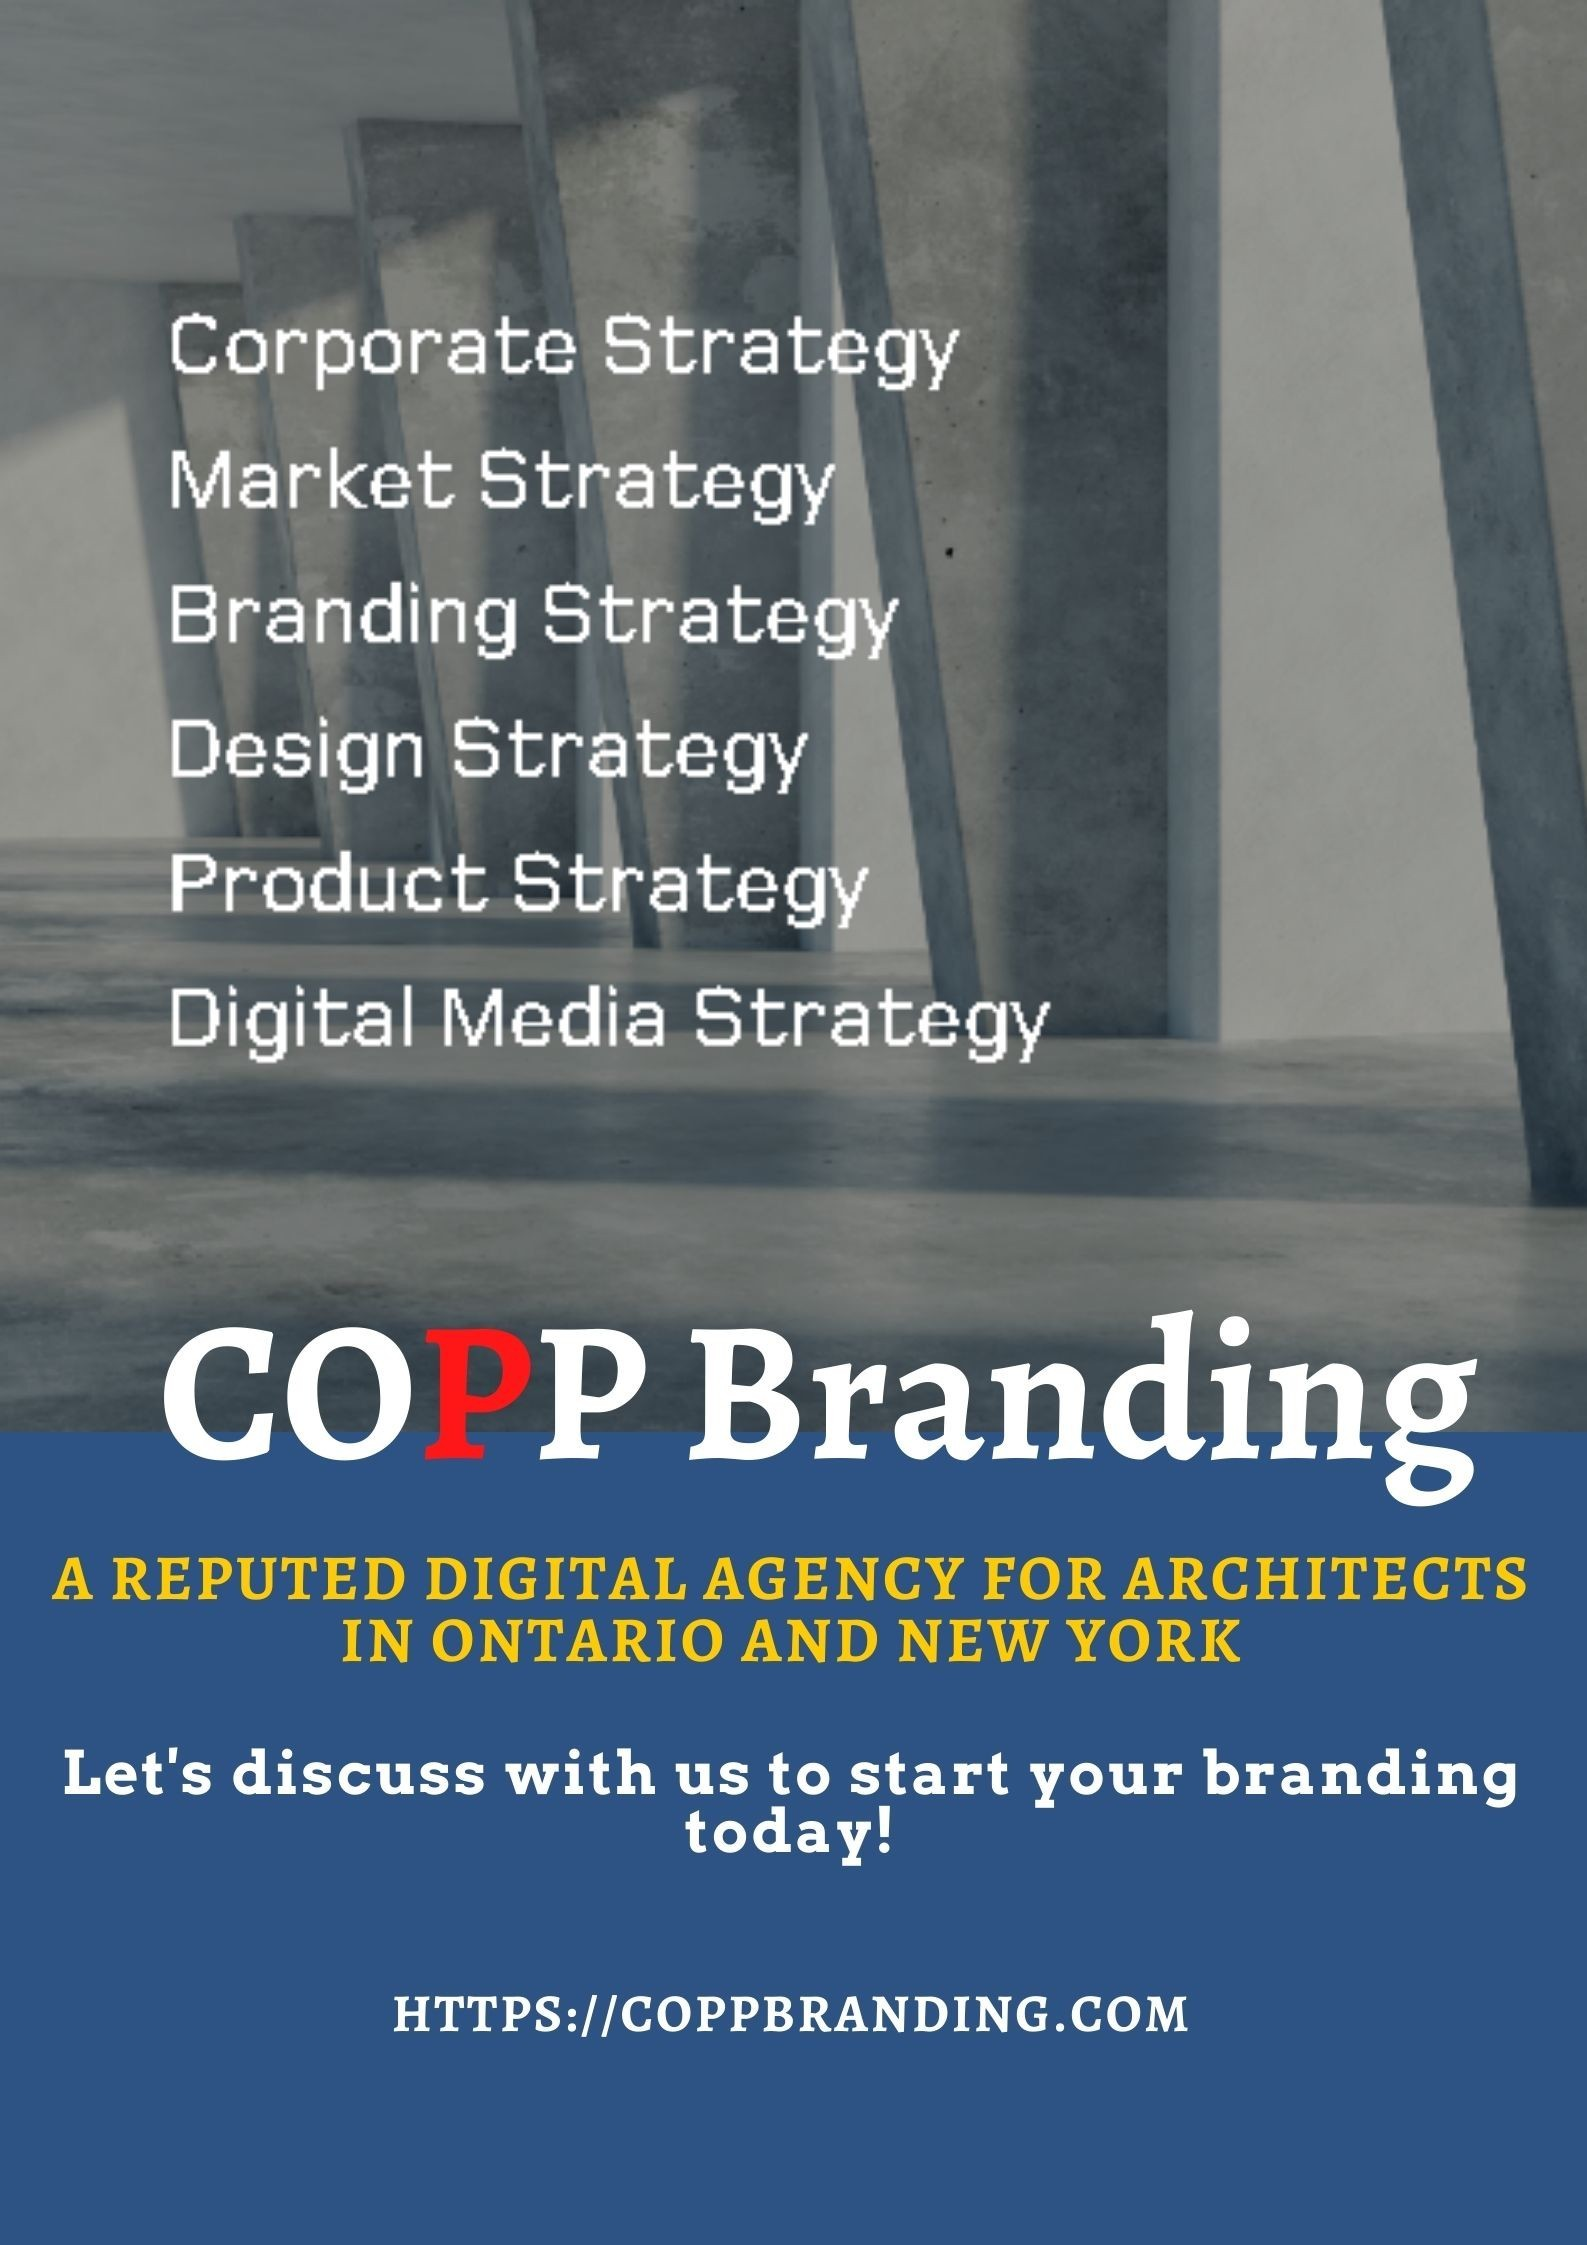 Marketing Agency for Architects In New York